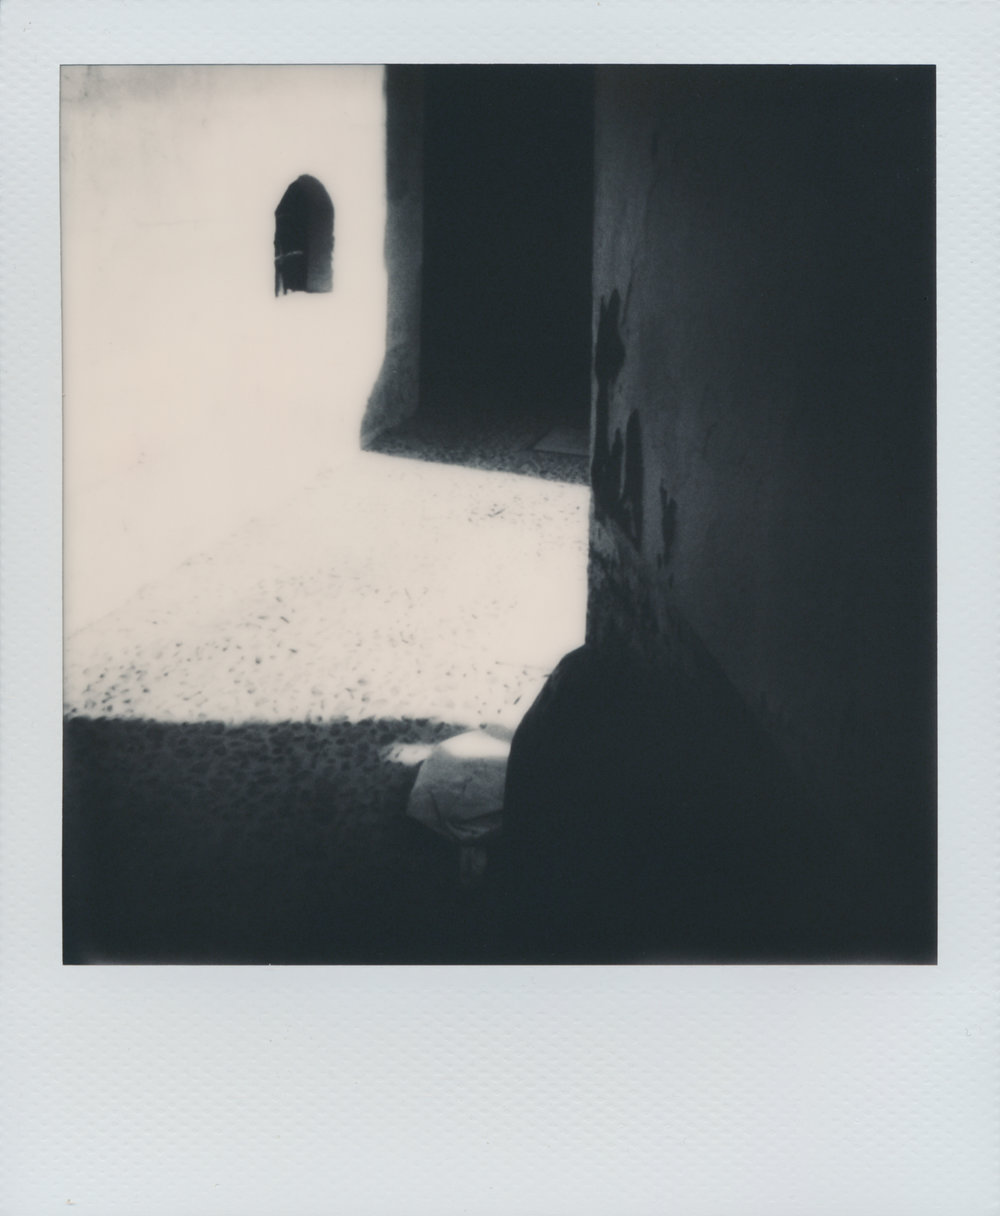 Malaga | Impossible Project Instant Lab | Impossible Project I-Type B/W Film | Per Forsström